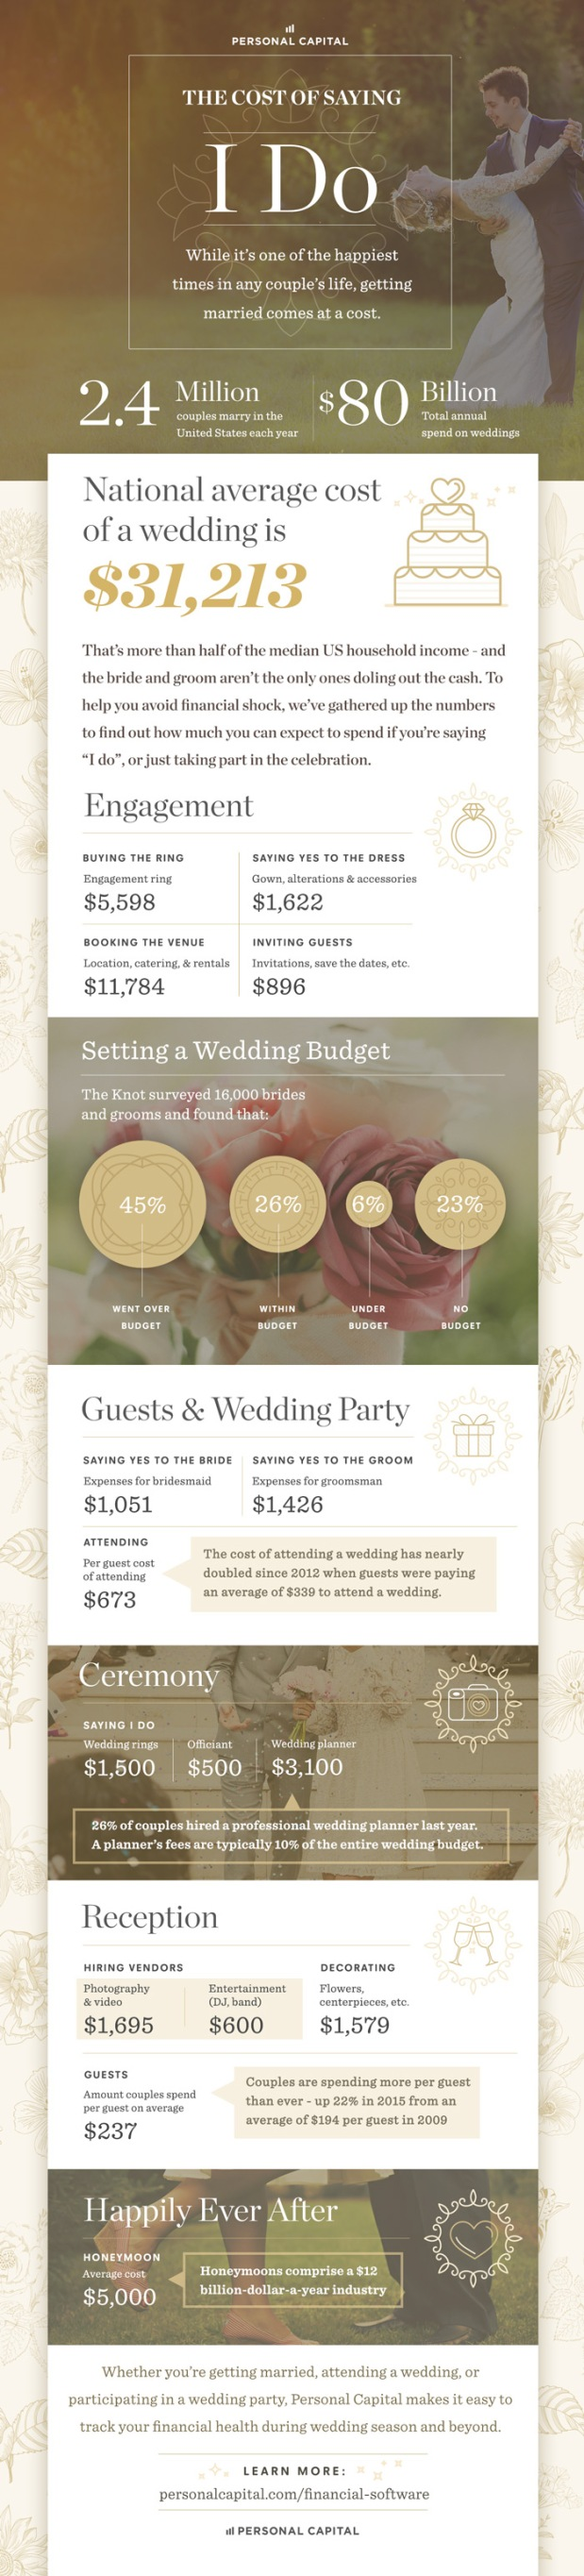 Cost of Saying I Do